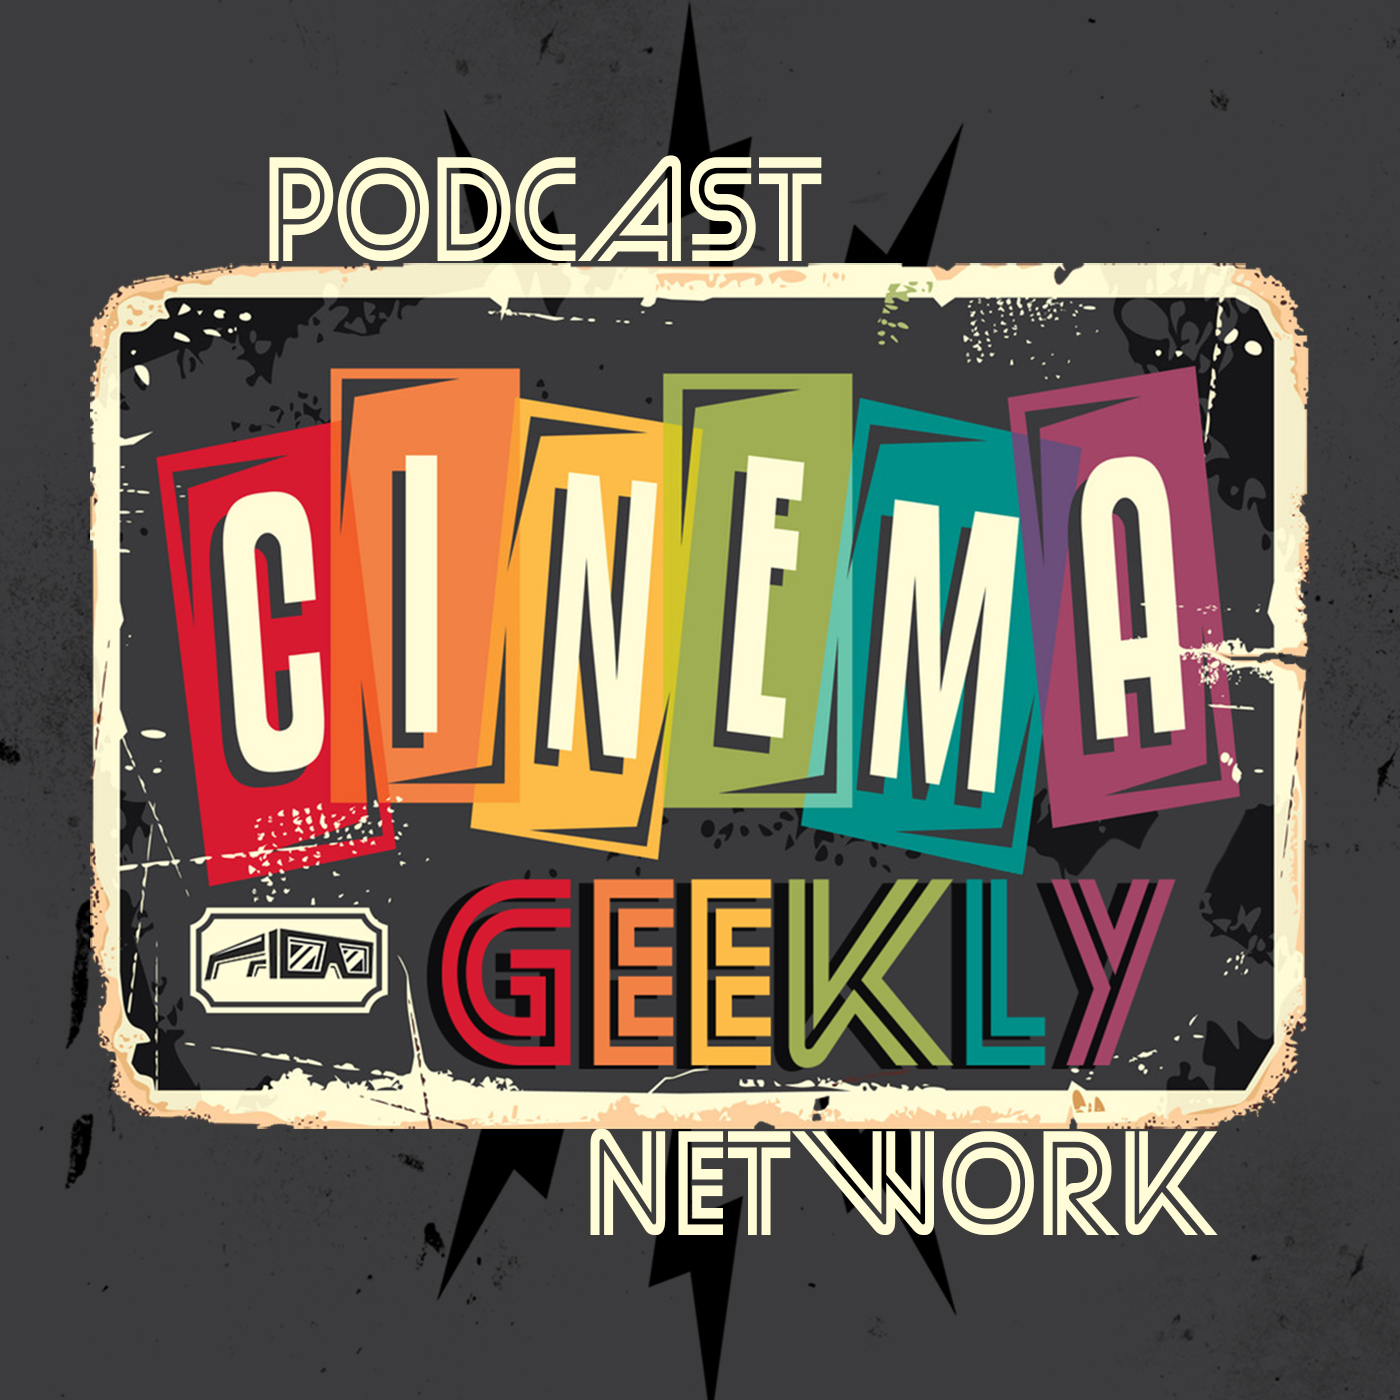 Cinema Geekly Podcast